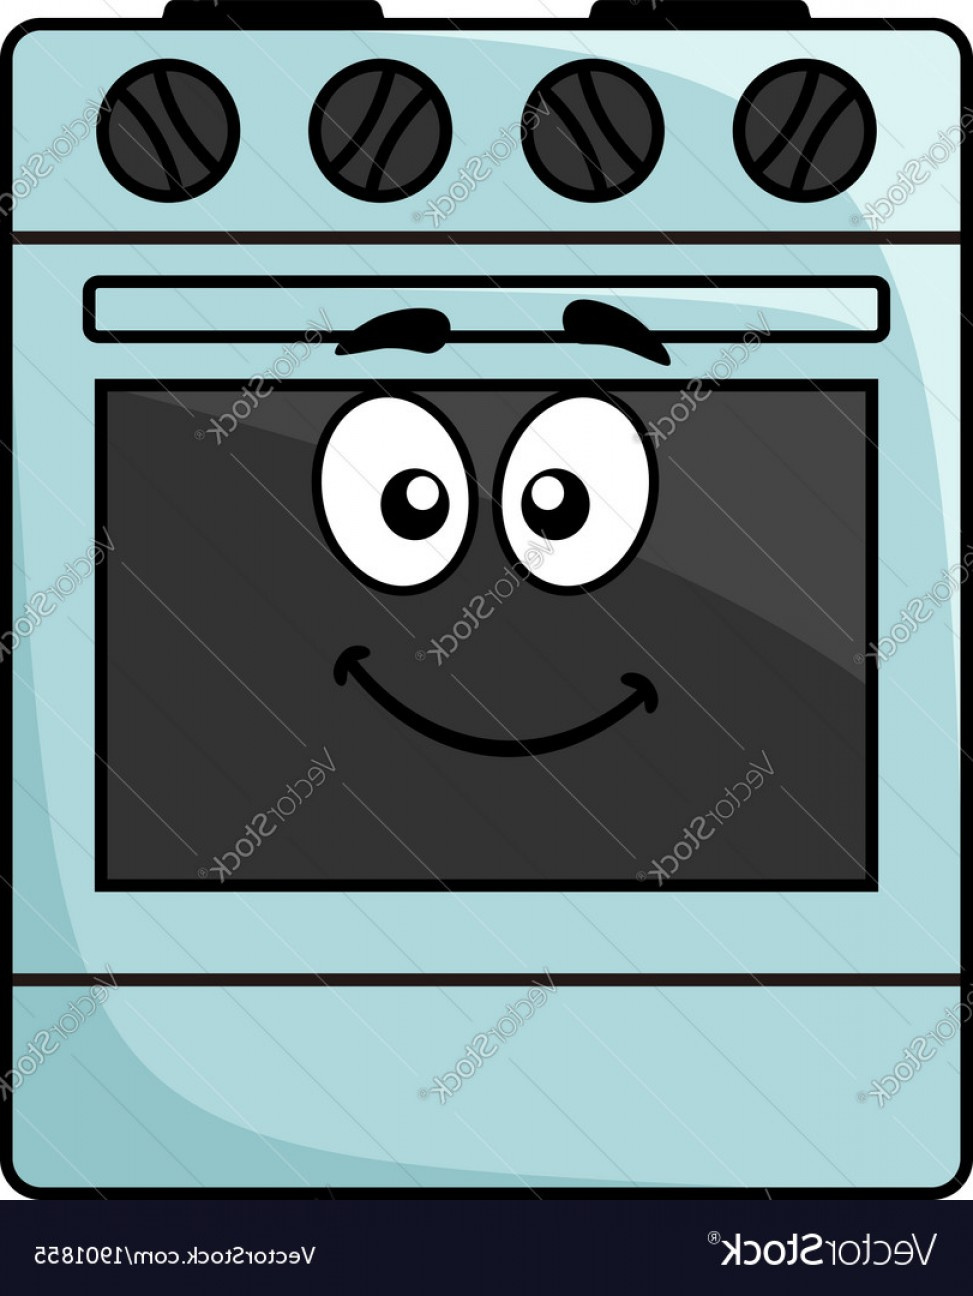 Happy Oven Vector: Fun Kitchen Appliance A Happy Oven Vector